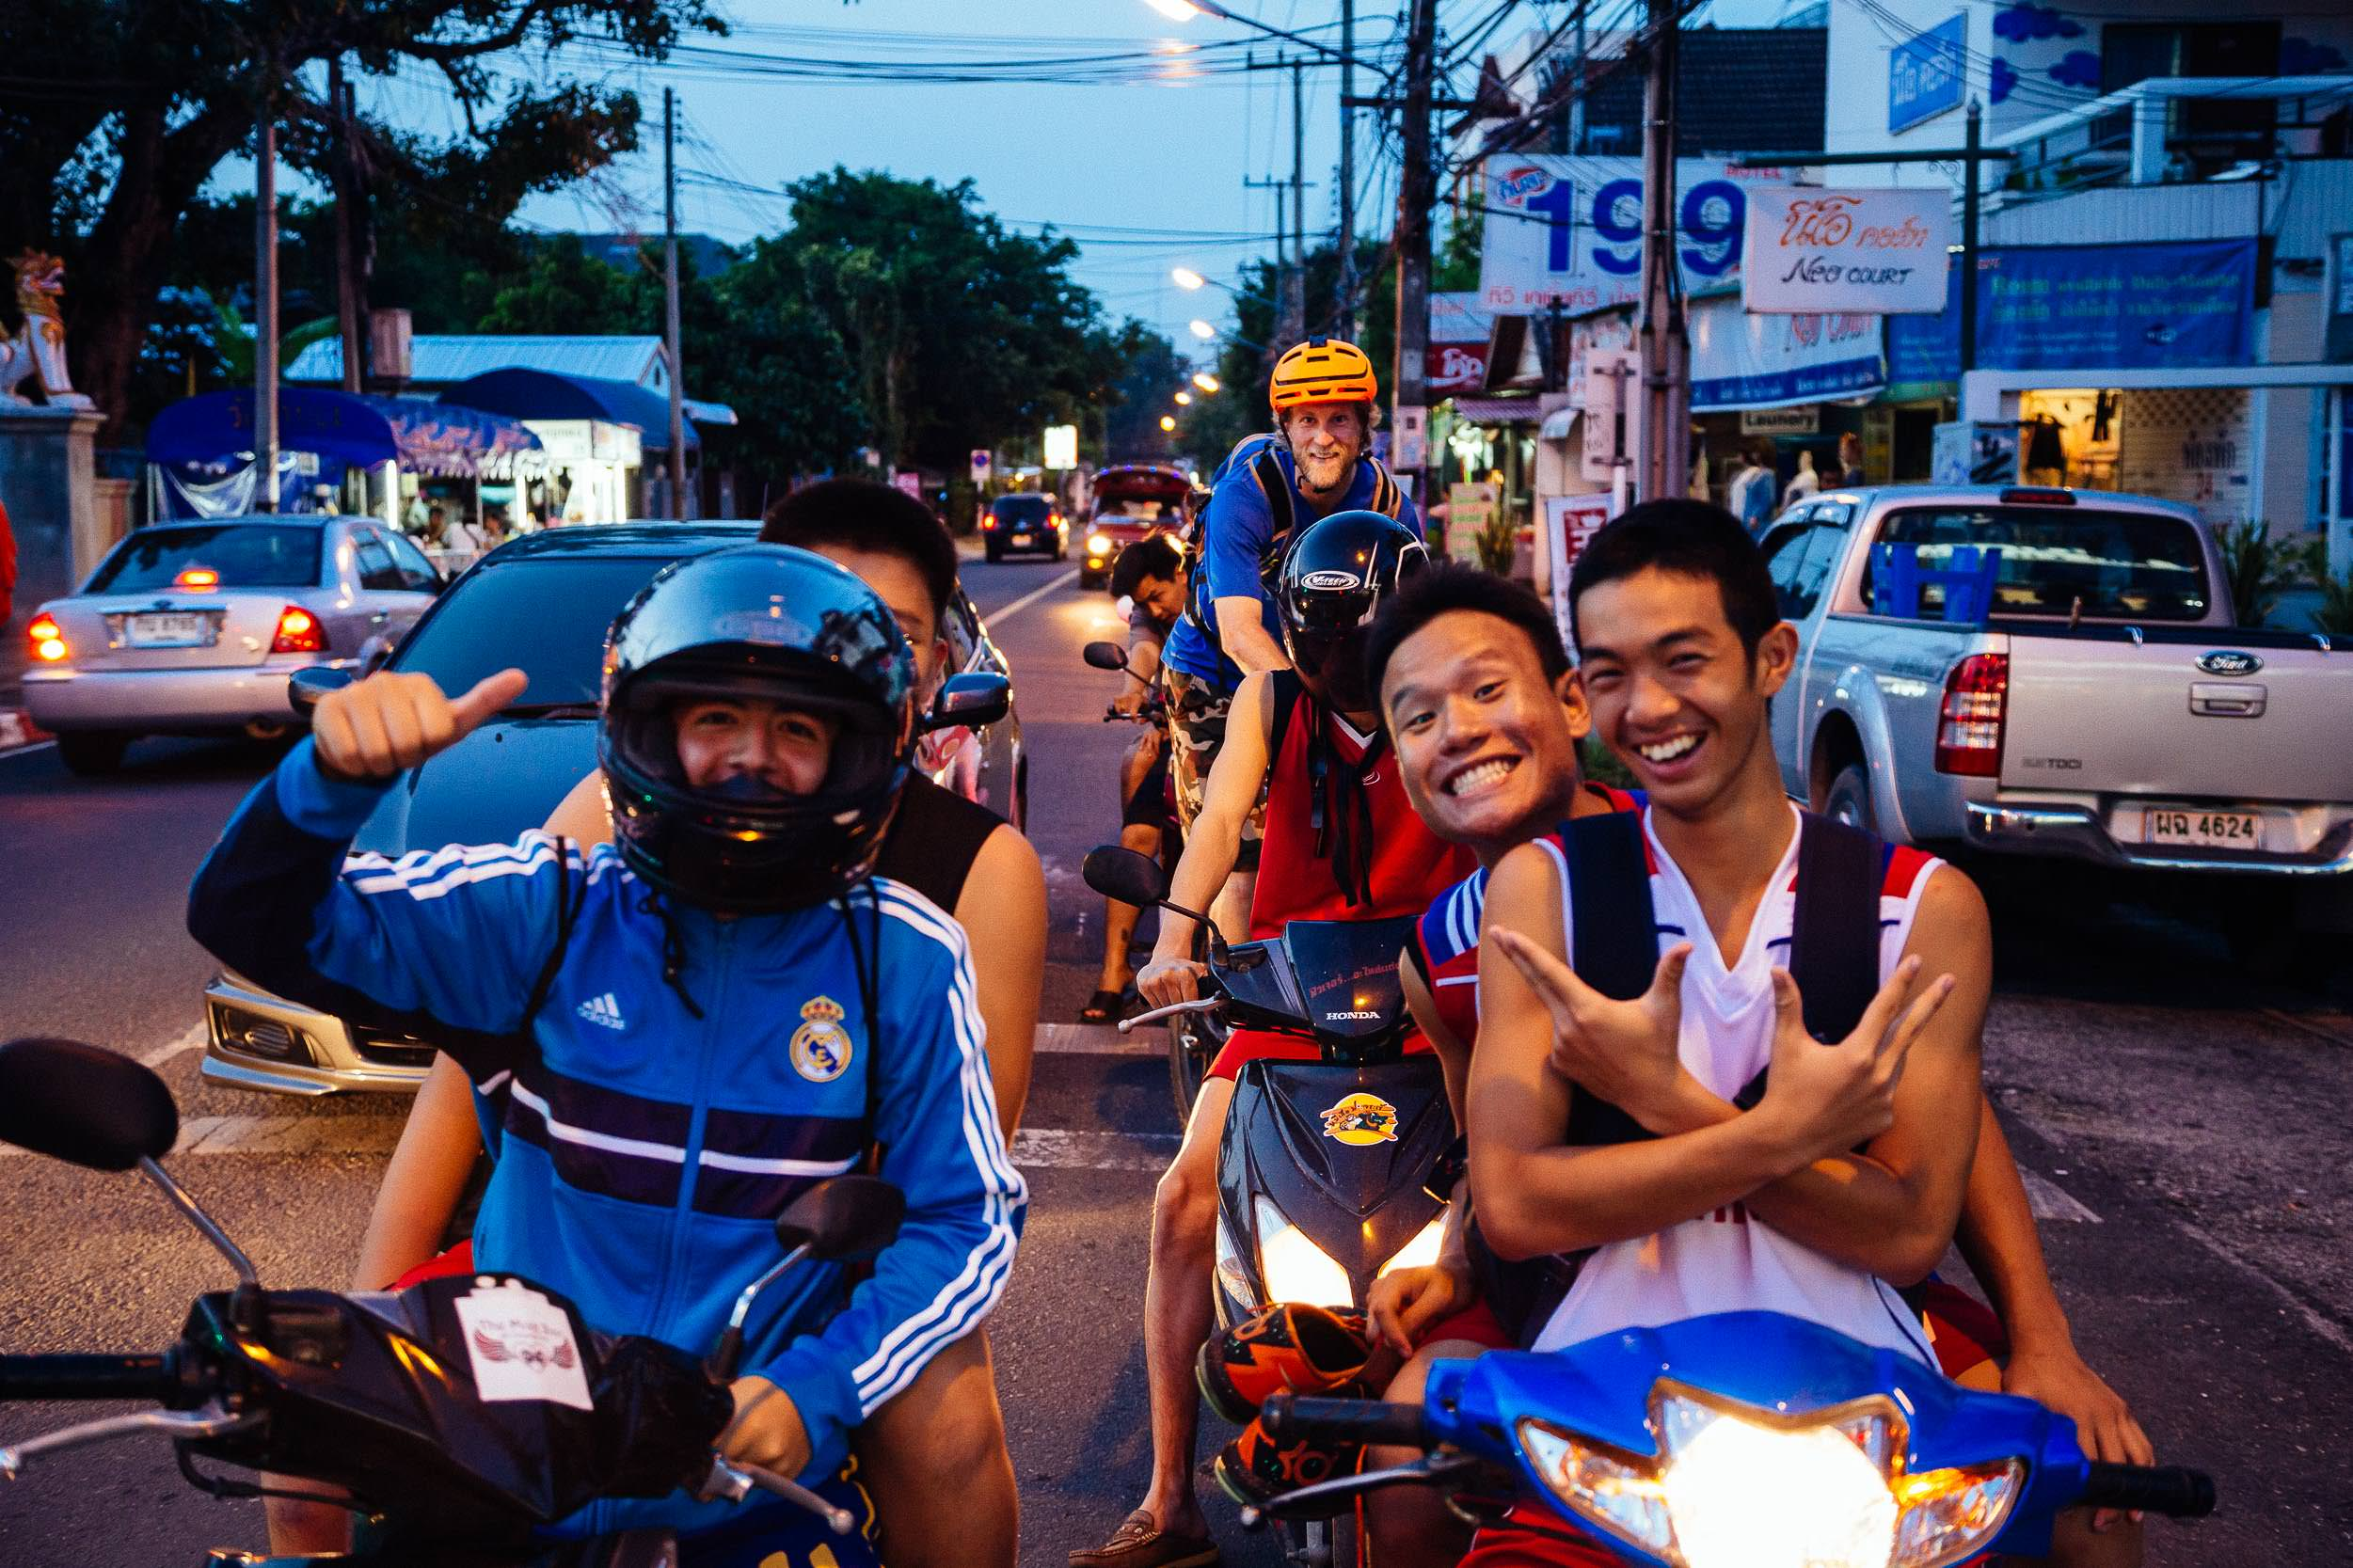 Andrew Whiteford and Jay Goodrich explore the local night market in downtown Chiang Mai, Thailand